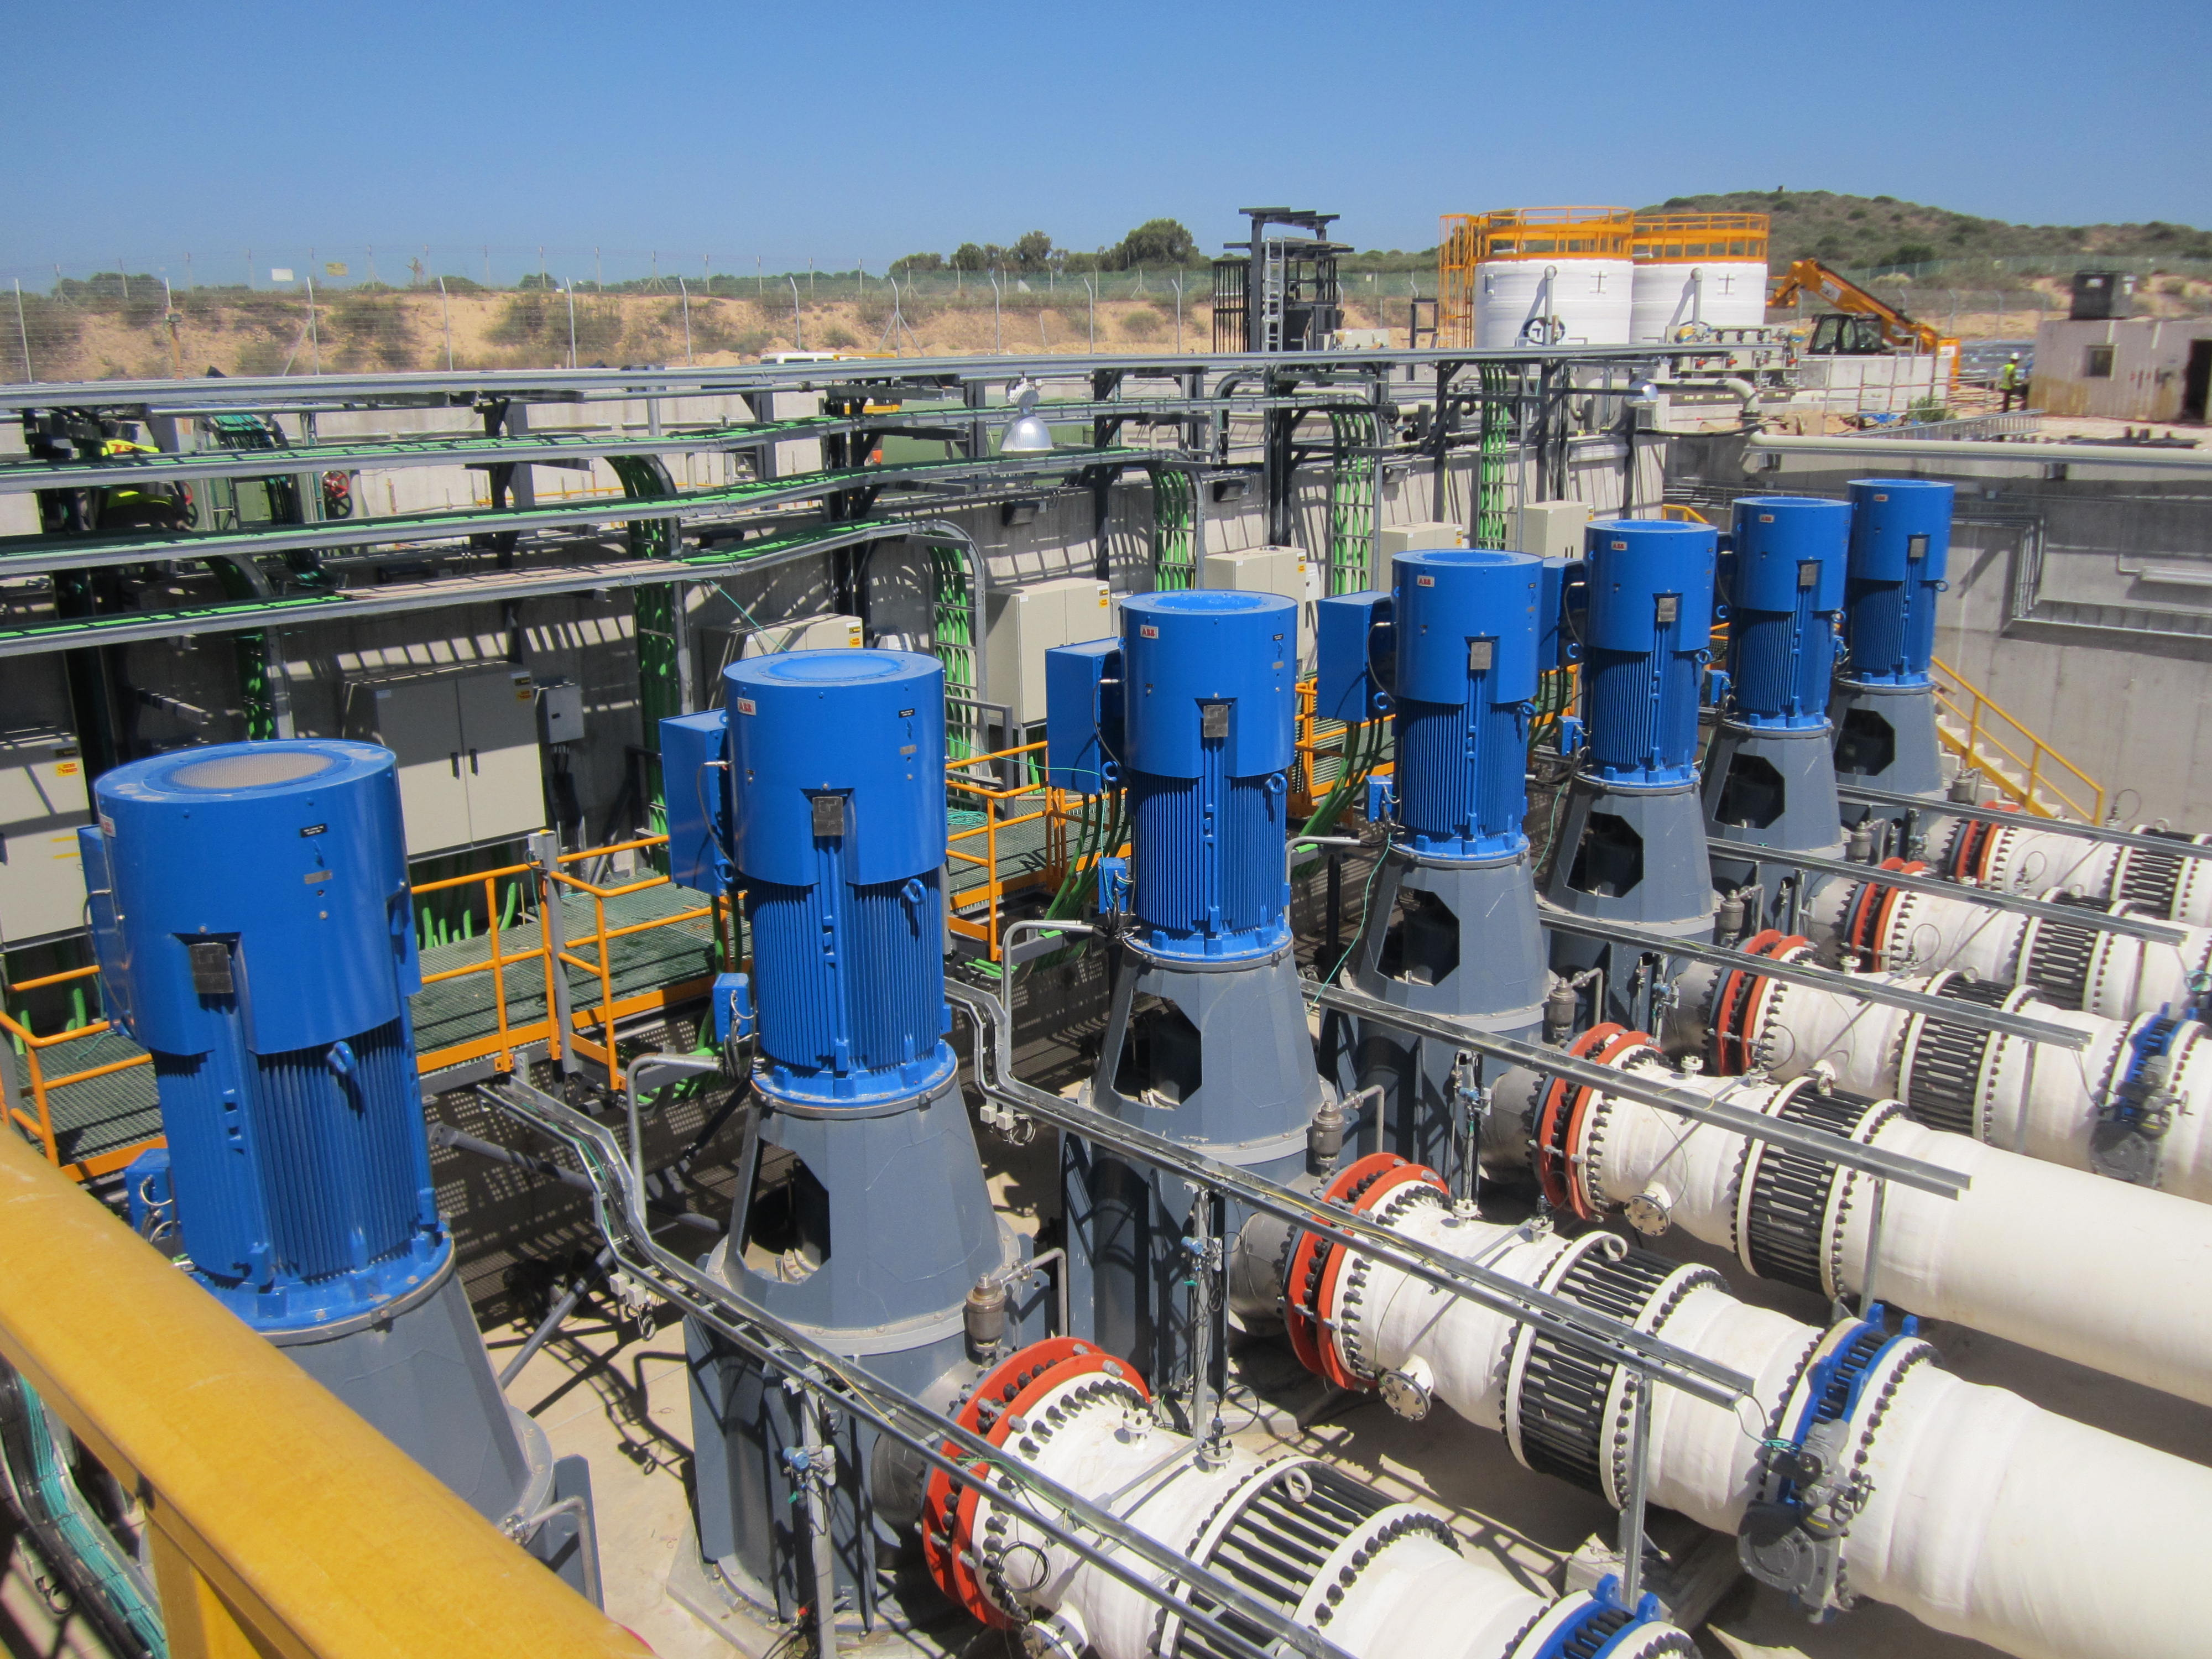 Water from the Mediterranean Sea rushes through pipes en route to being filtered for use across Israel in a process called desalination, which could soon account for 80 percent of the countrys potable water. (Ben Sales/JTA)